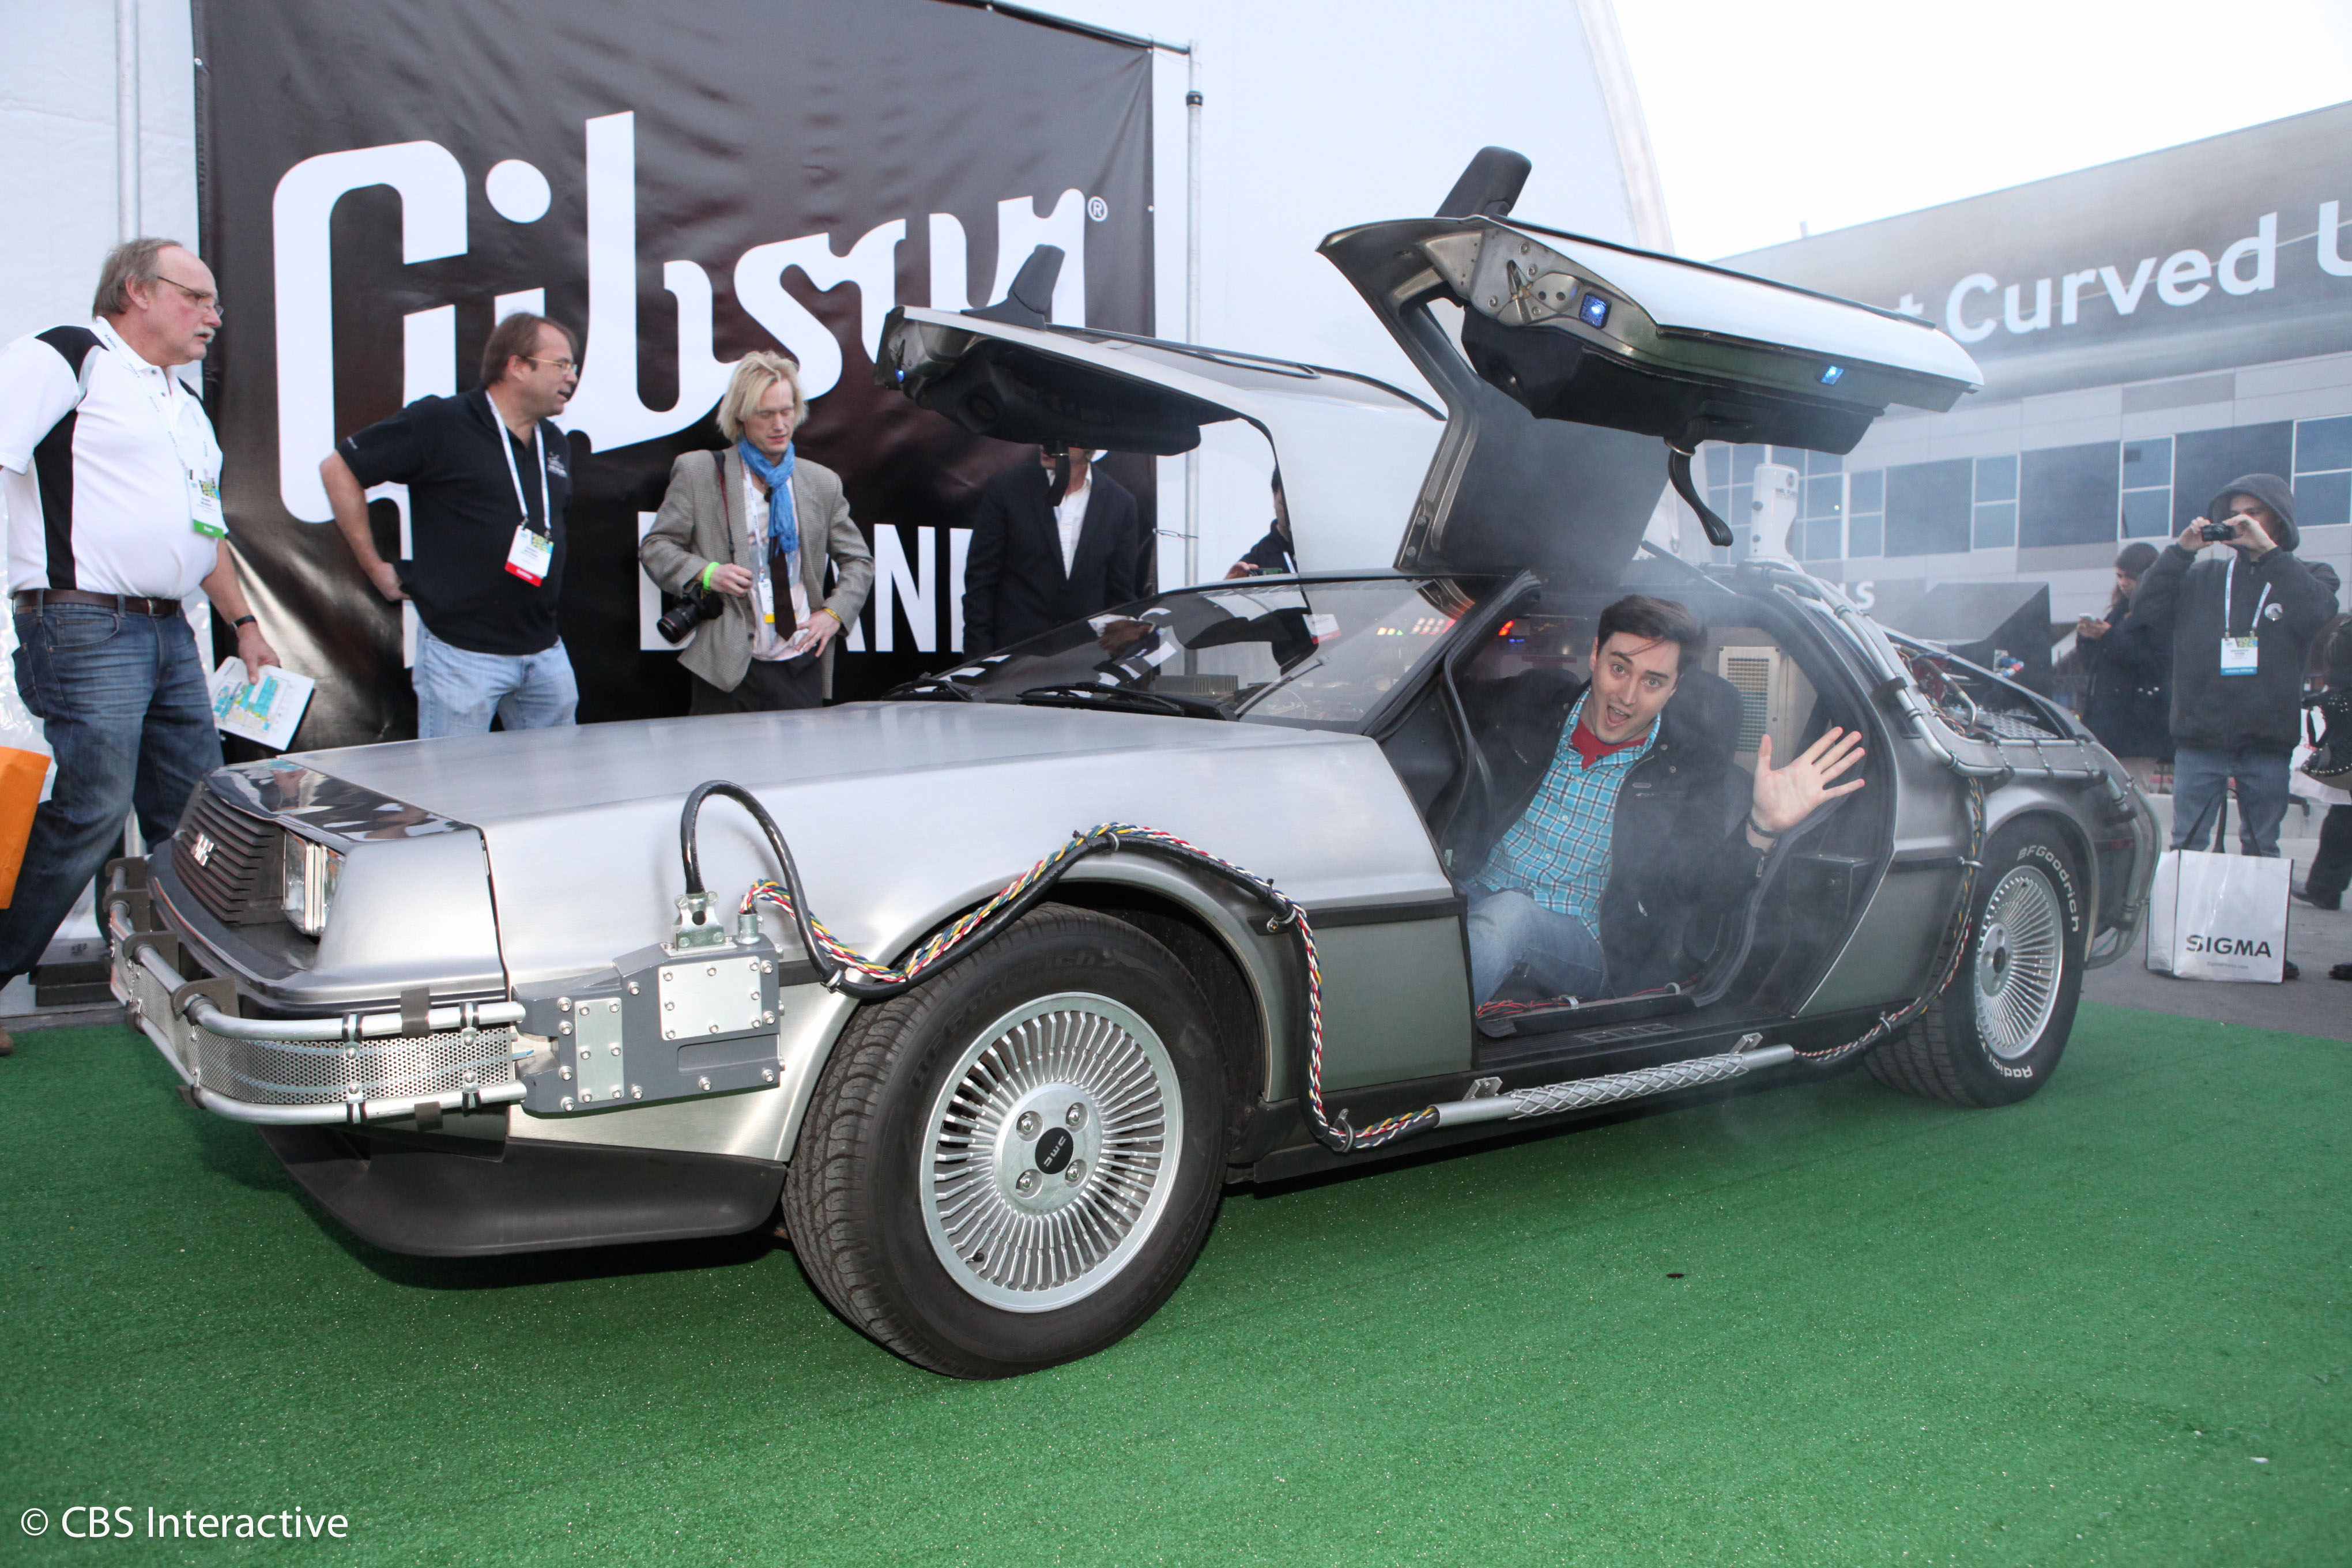 Coolest entrance at CES 2014? Doc Brown in his Delorean